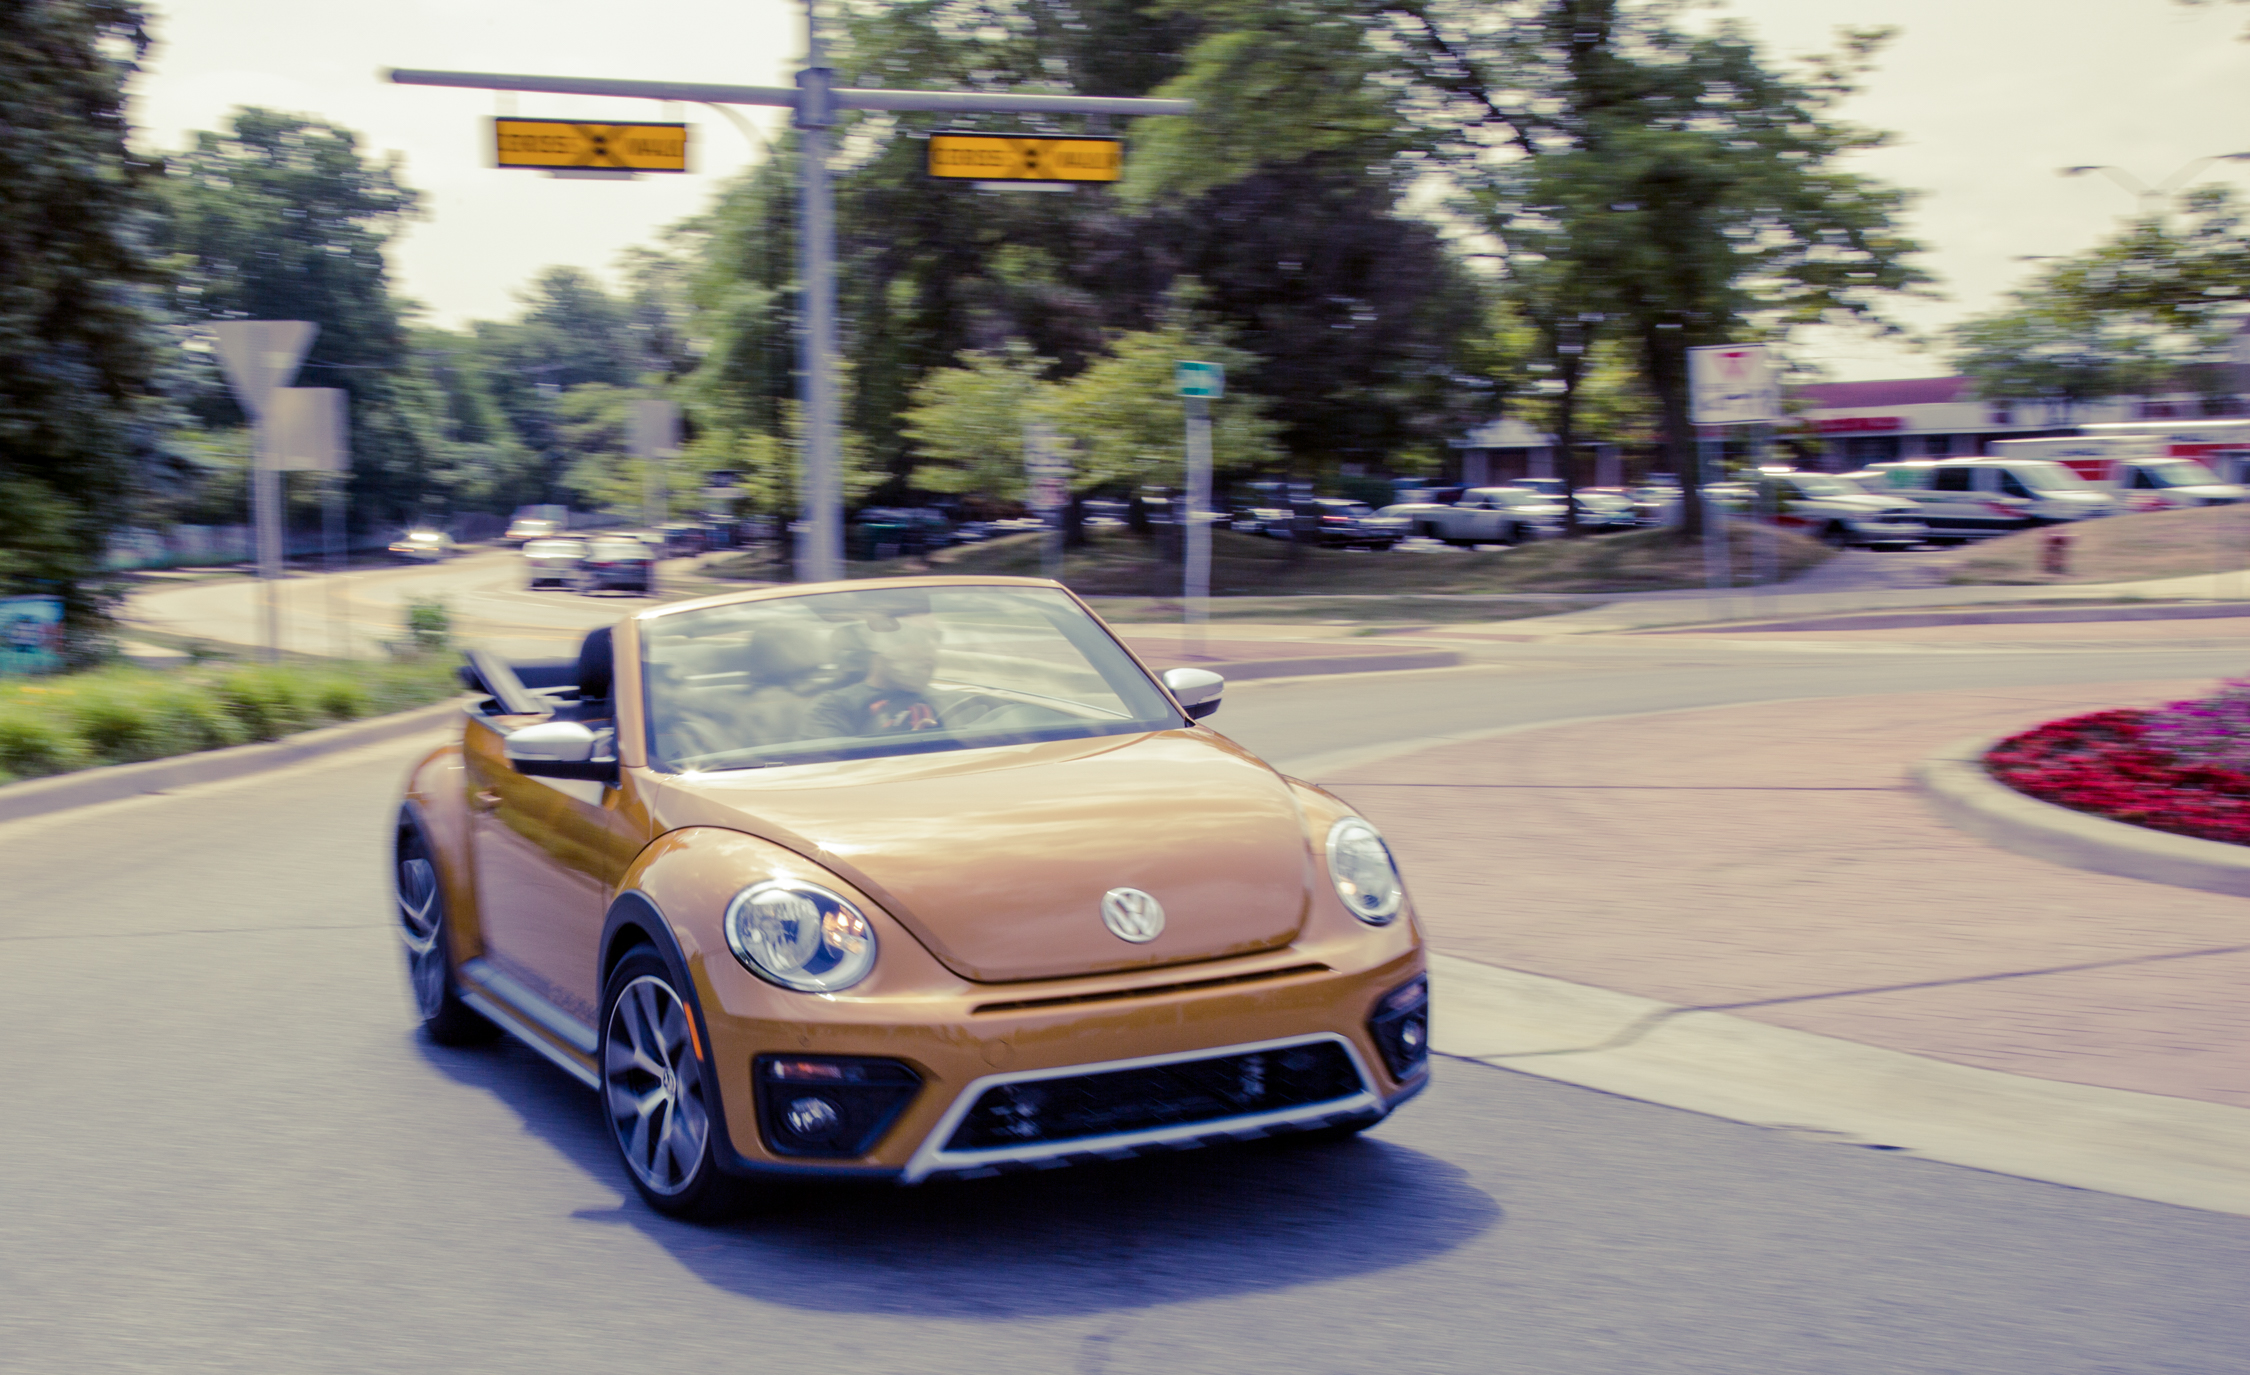 2017 Volkswagen Beetle Dune Convertible Test Drive Front View (Photo 12 of 19)